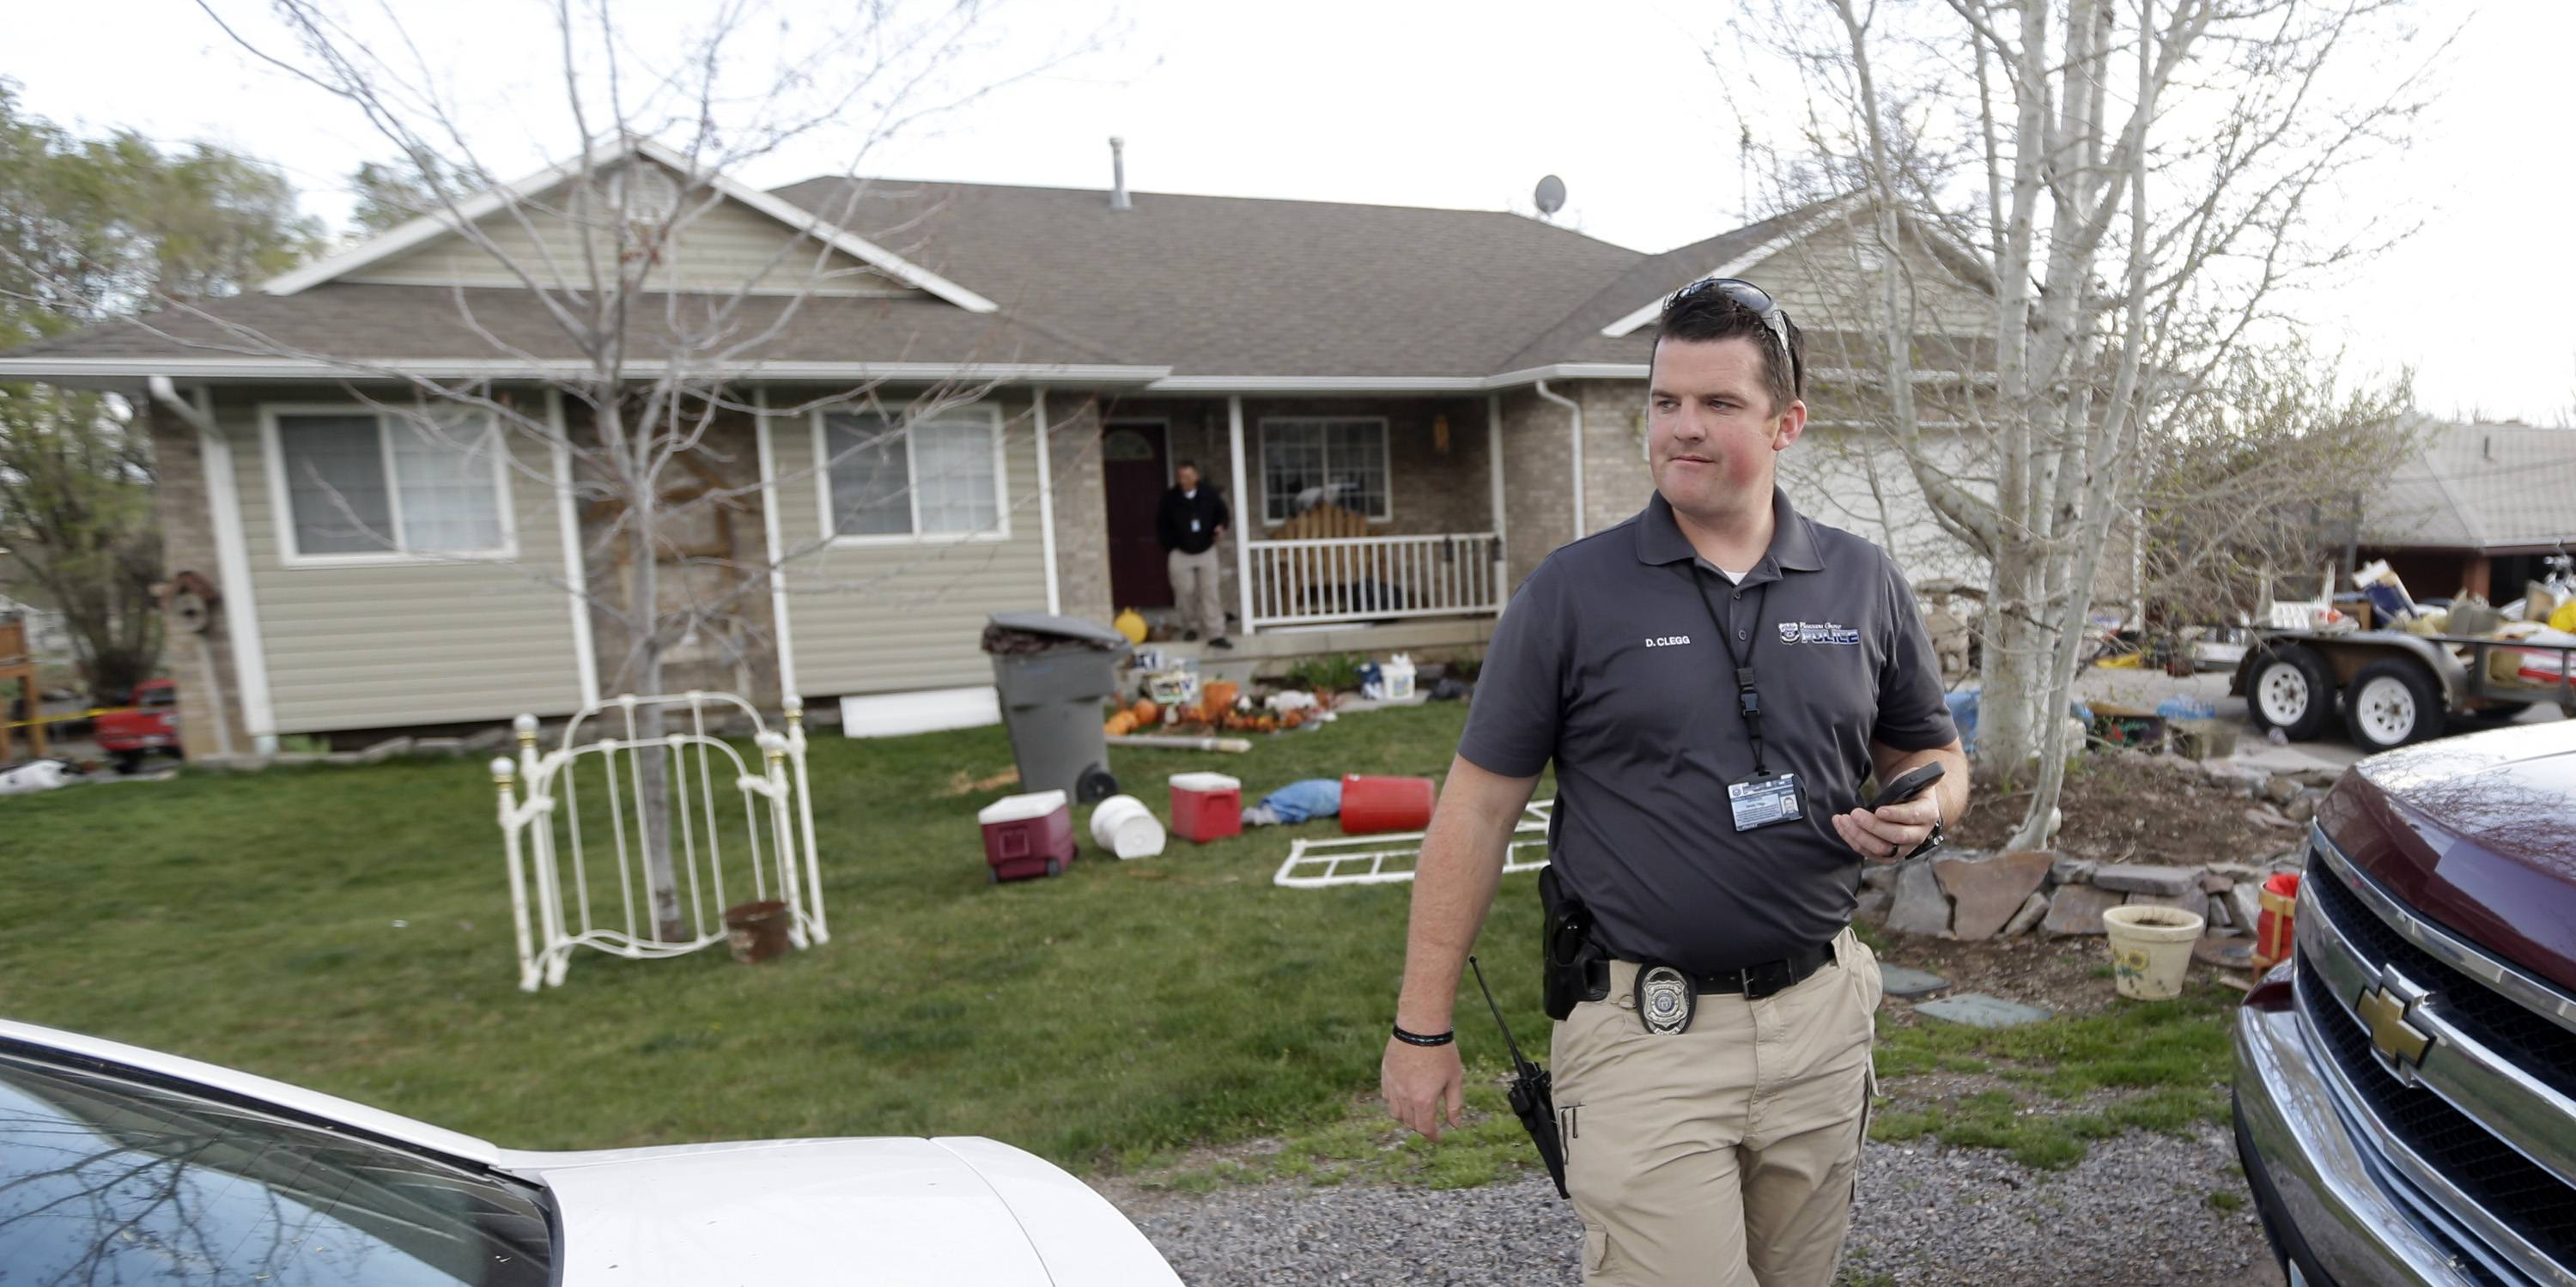 Pleasant Grove Police investigate the scene Sunday where seven infant bodies were discovered and packaged in separate containers at a home in Pleasant Grove, Utah. According to the Pleasant Grove Police Department, seven dead infants were found in the former home of Megan Huntsman, 39. Huntsman was booked into jail on six counts of murder.